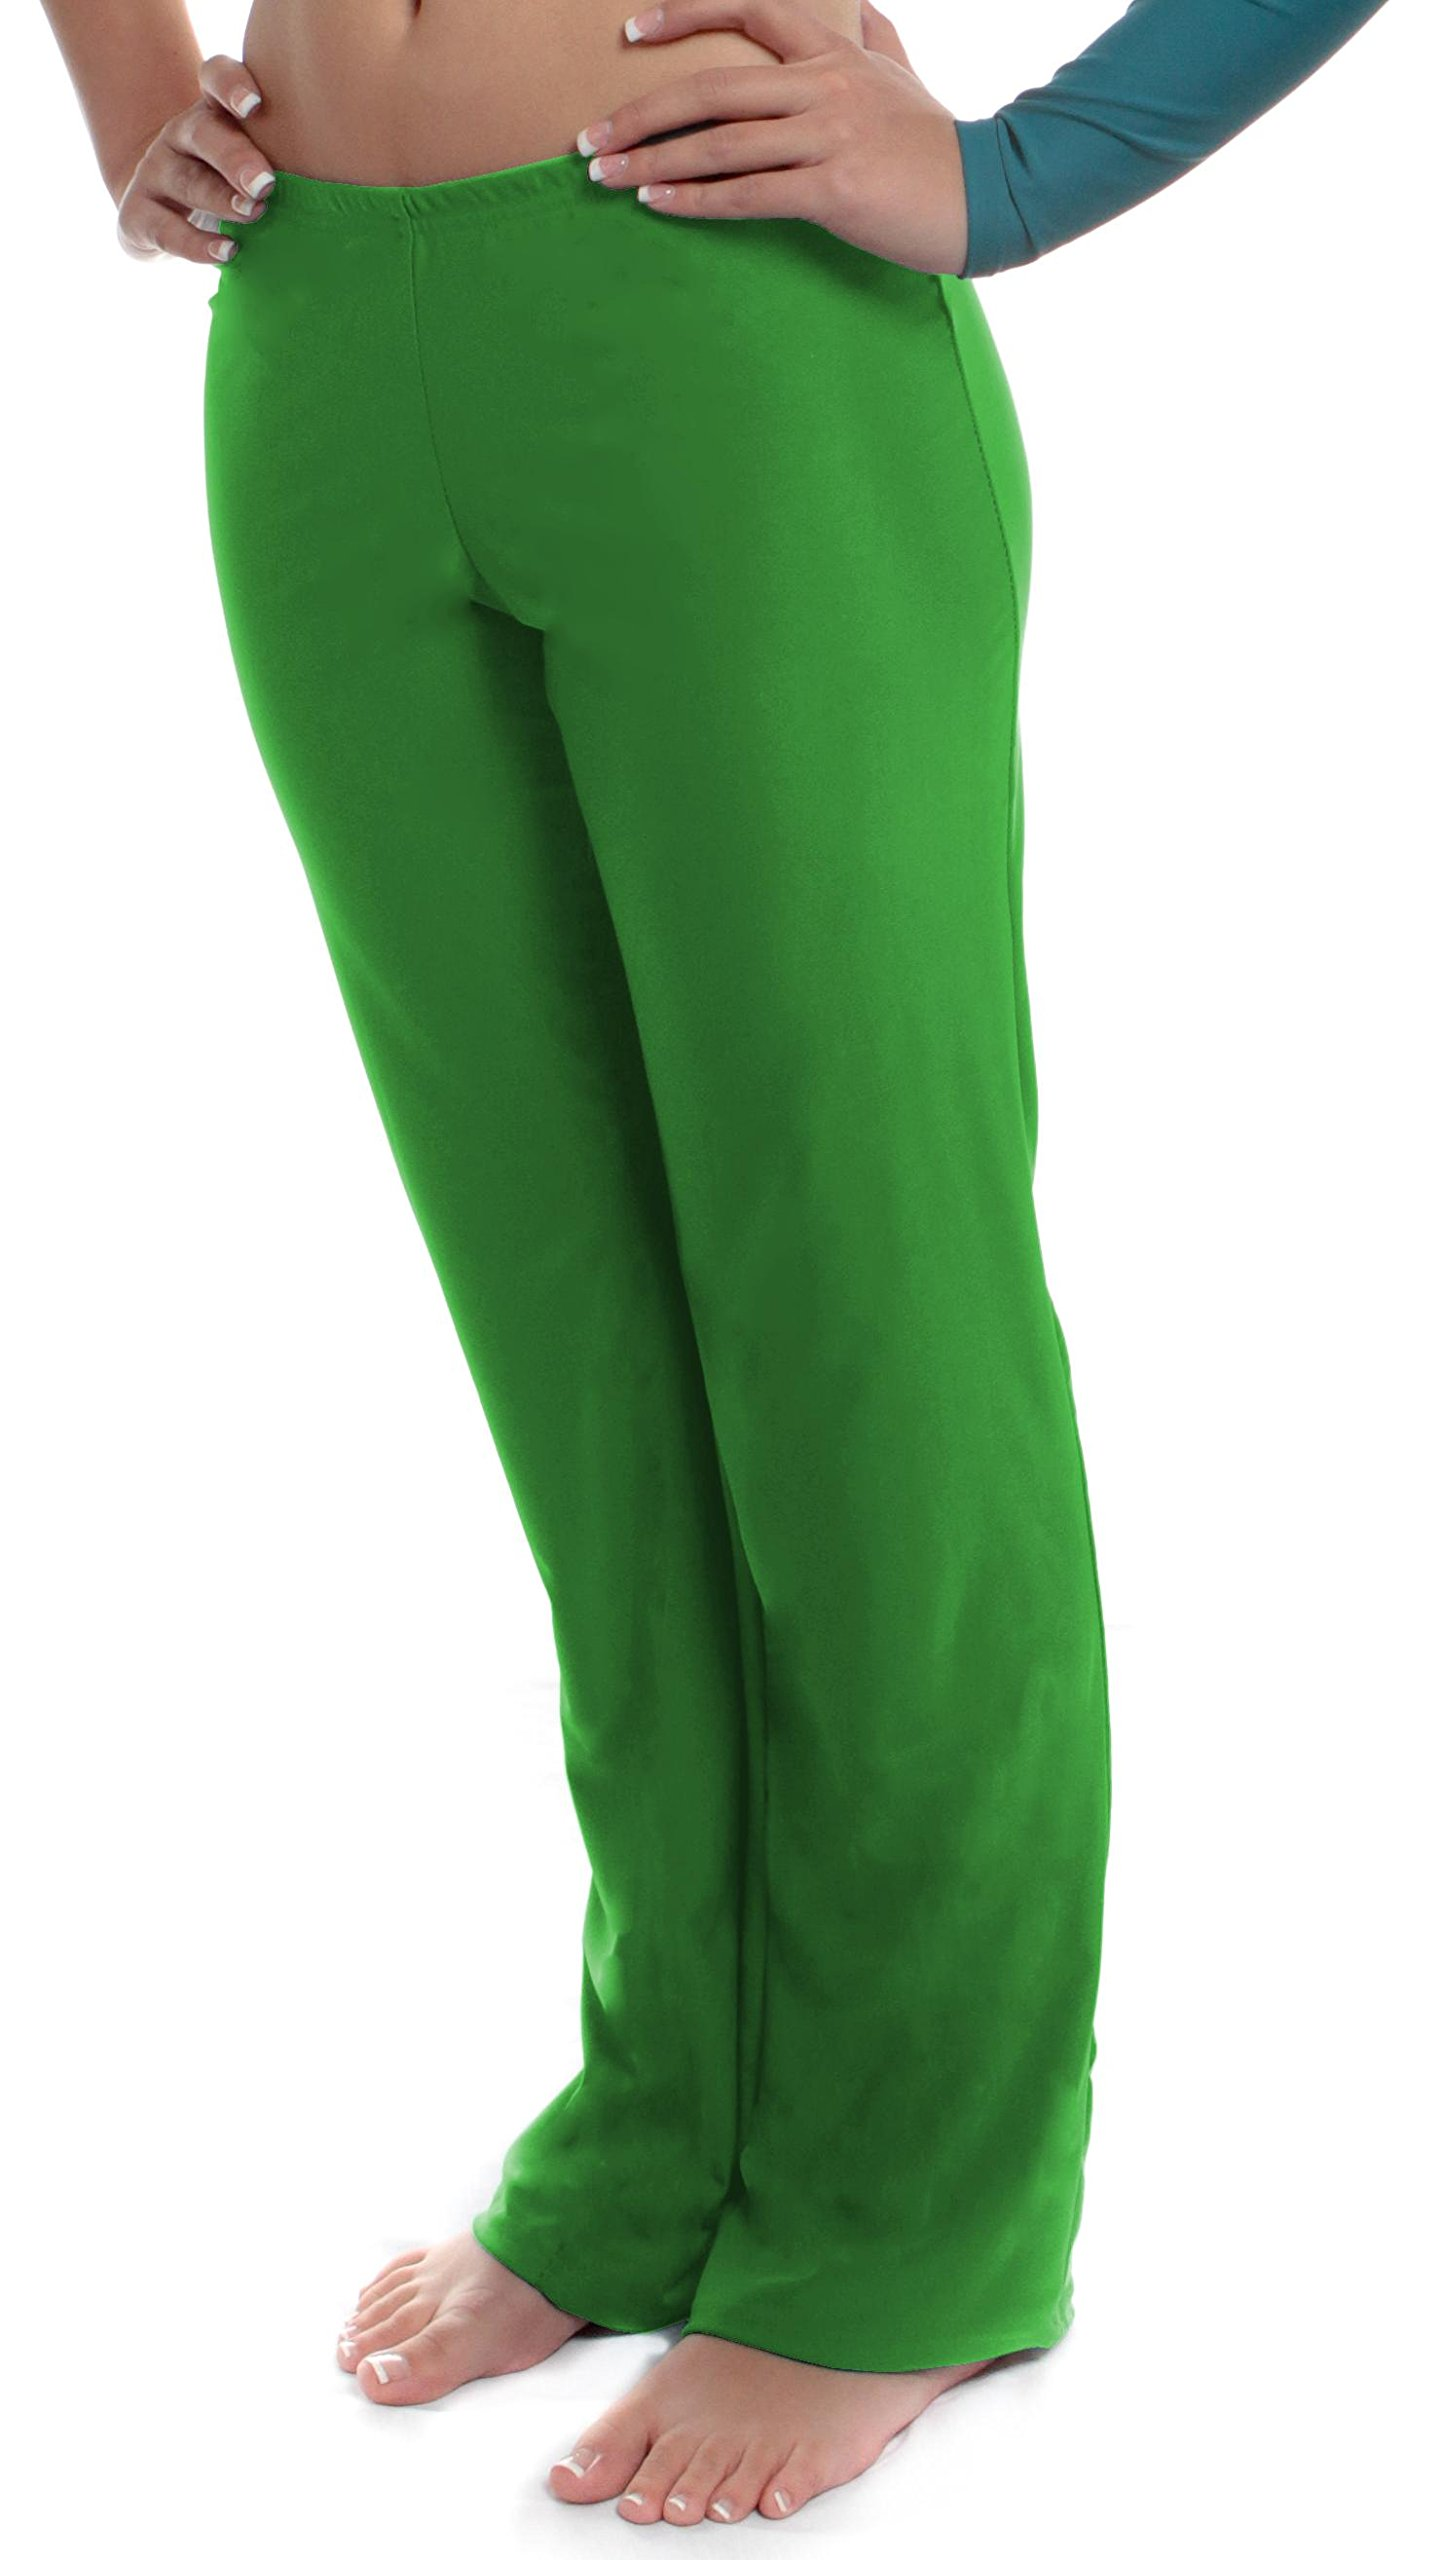 B Dancewear Girls Jazz Pants Large Green Child and Kid Sizes by B Dancewear